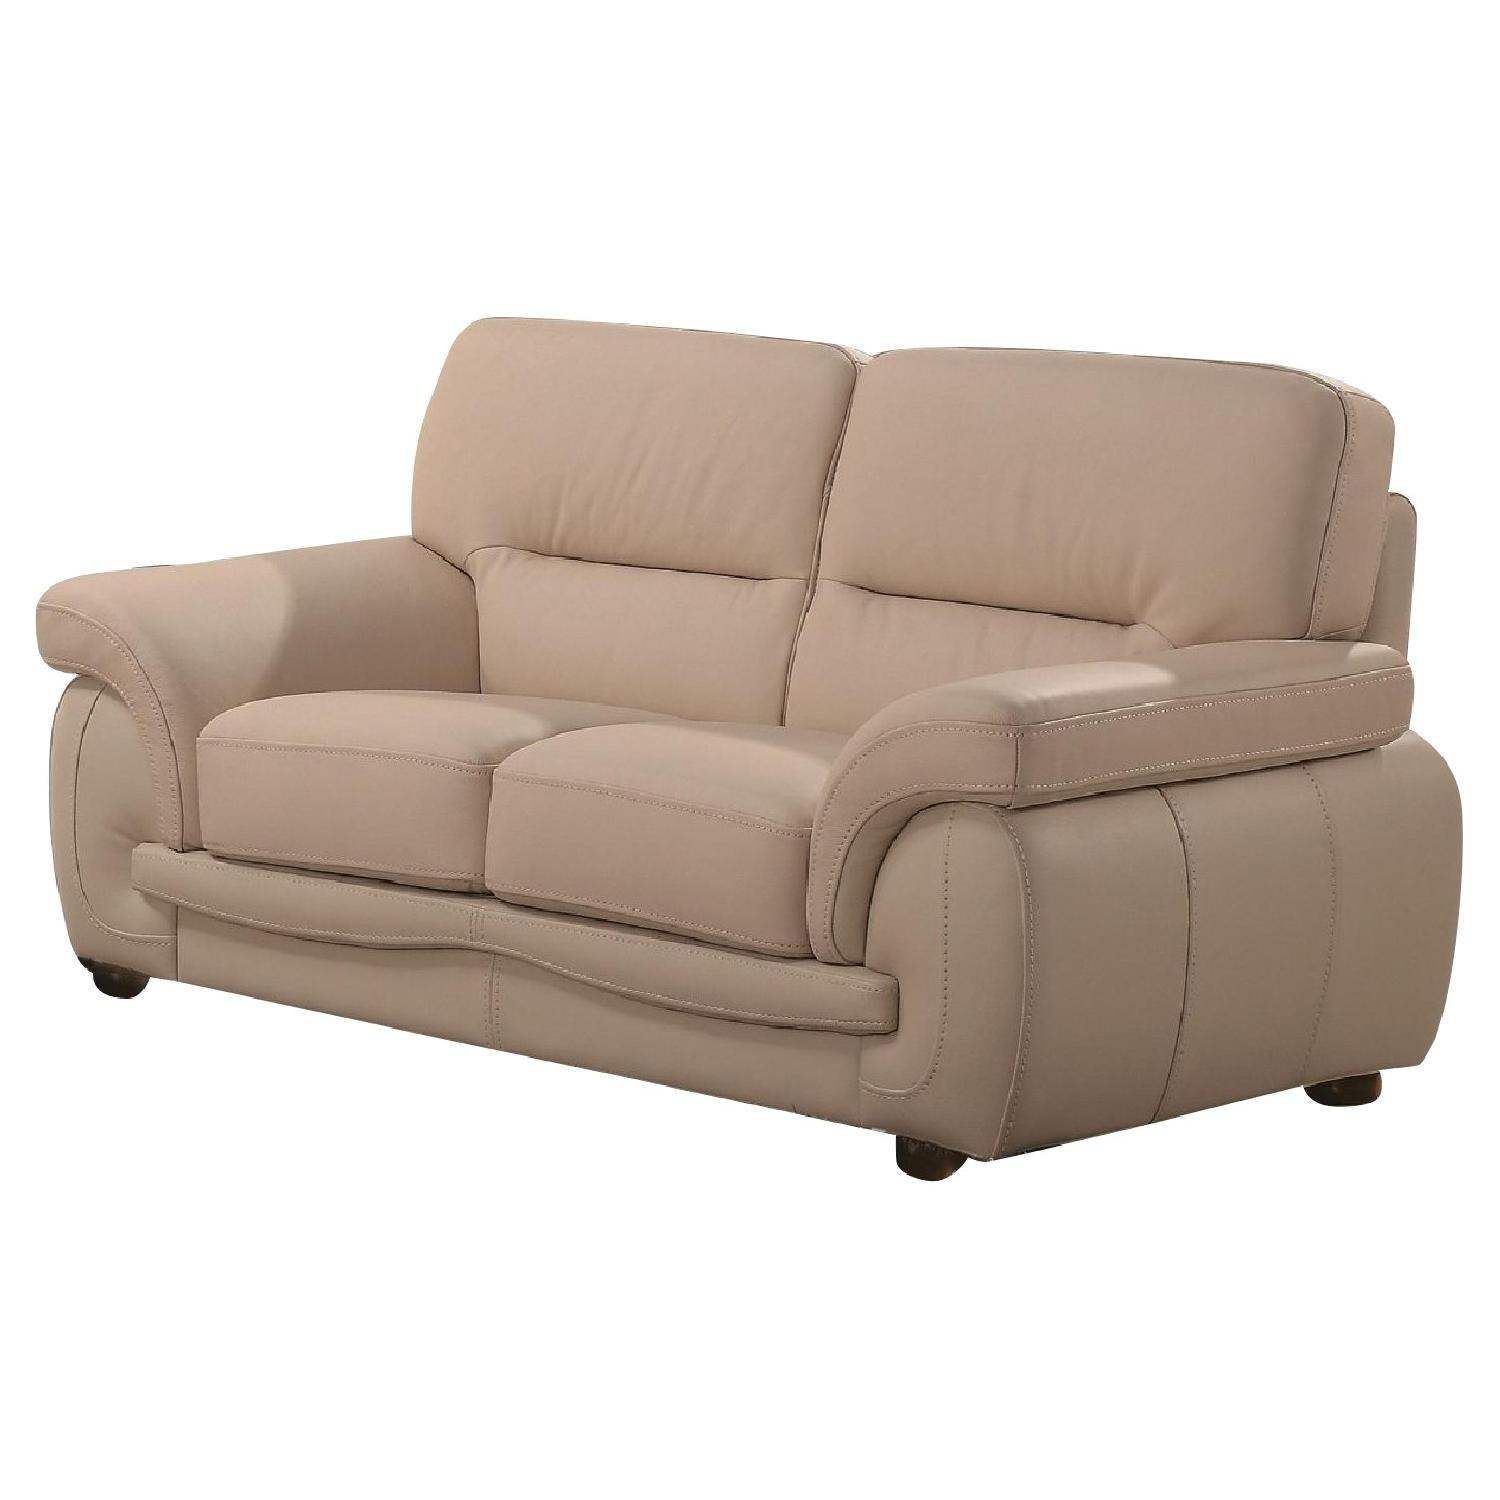 Modern Loveseat in Beige Top Grain Leather w/ High Density Foam & White Stitching